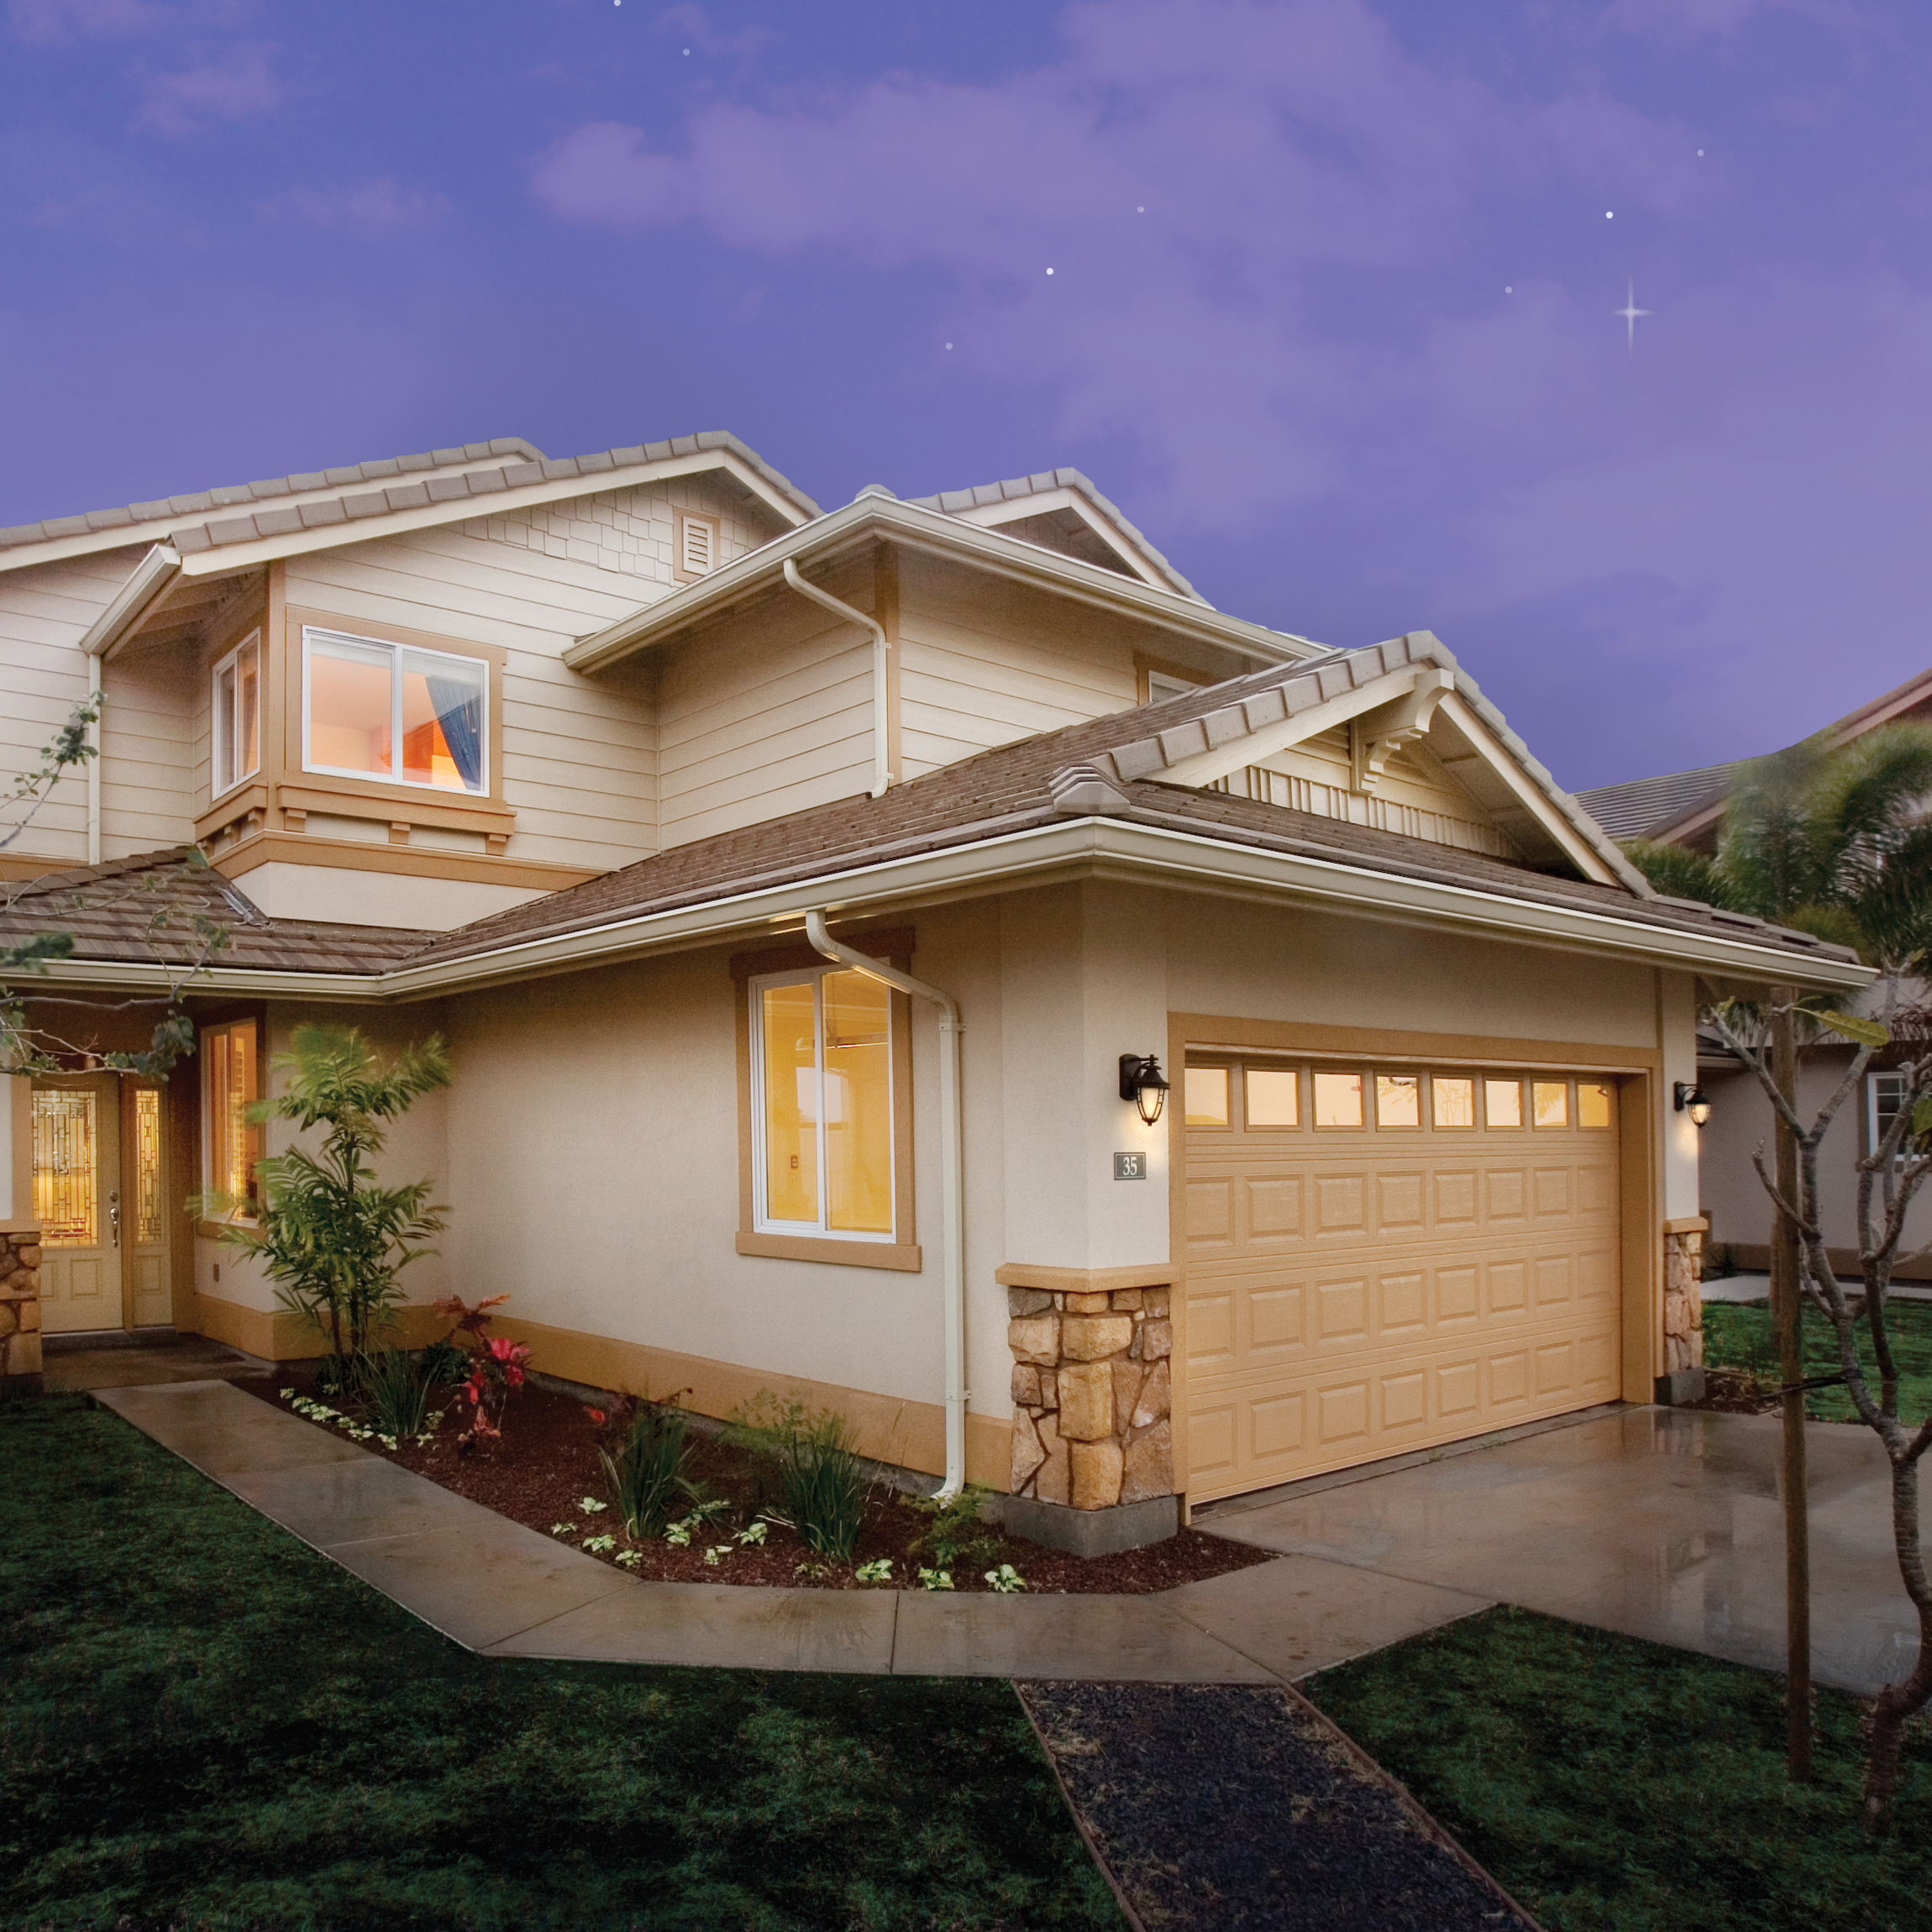 HIGHPOINTE    Makakilo, Oahu Island, Hawaii   On the foothills of the Waianae mountain range, the Highpointe development encompasses over 400 single family homes spread across 12 one and two story model types. These spacious homes range in size from 1,800 to 2,500 square feet.